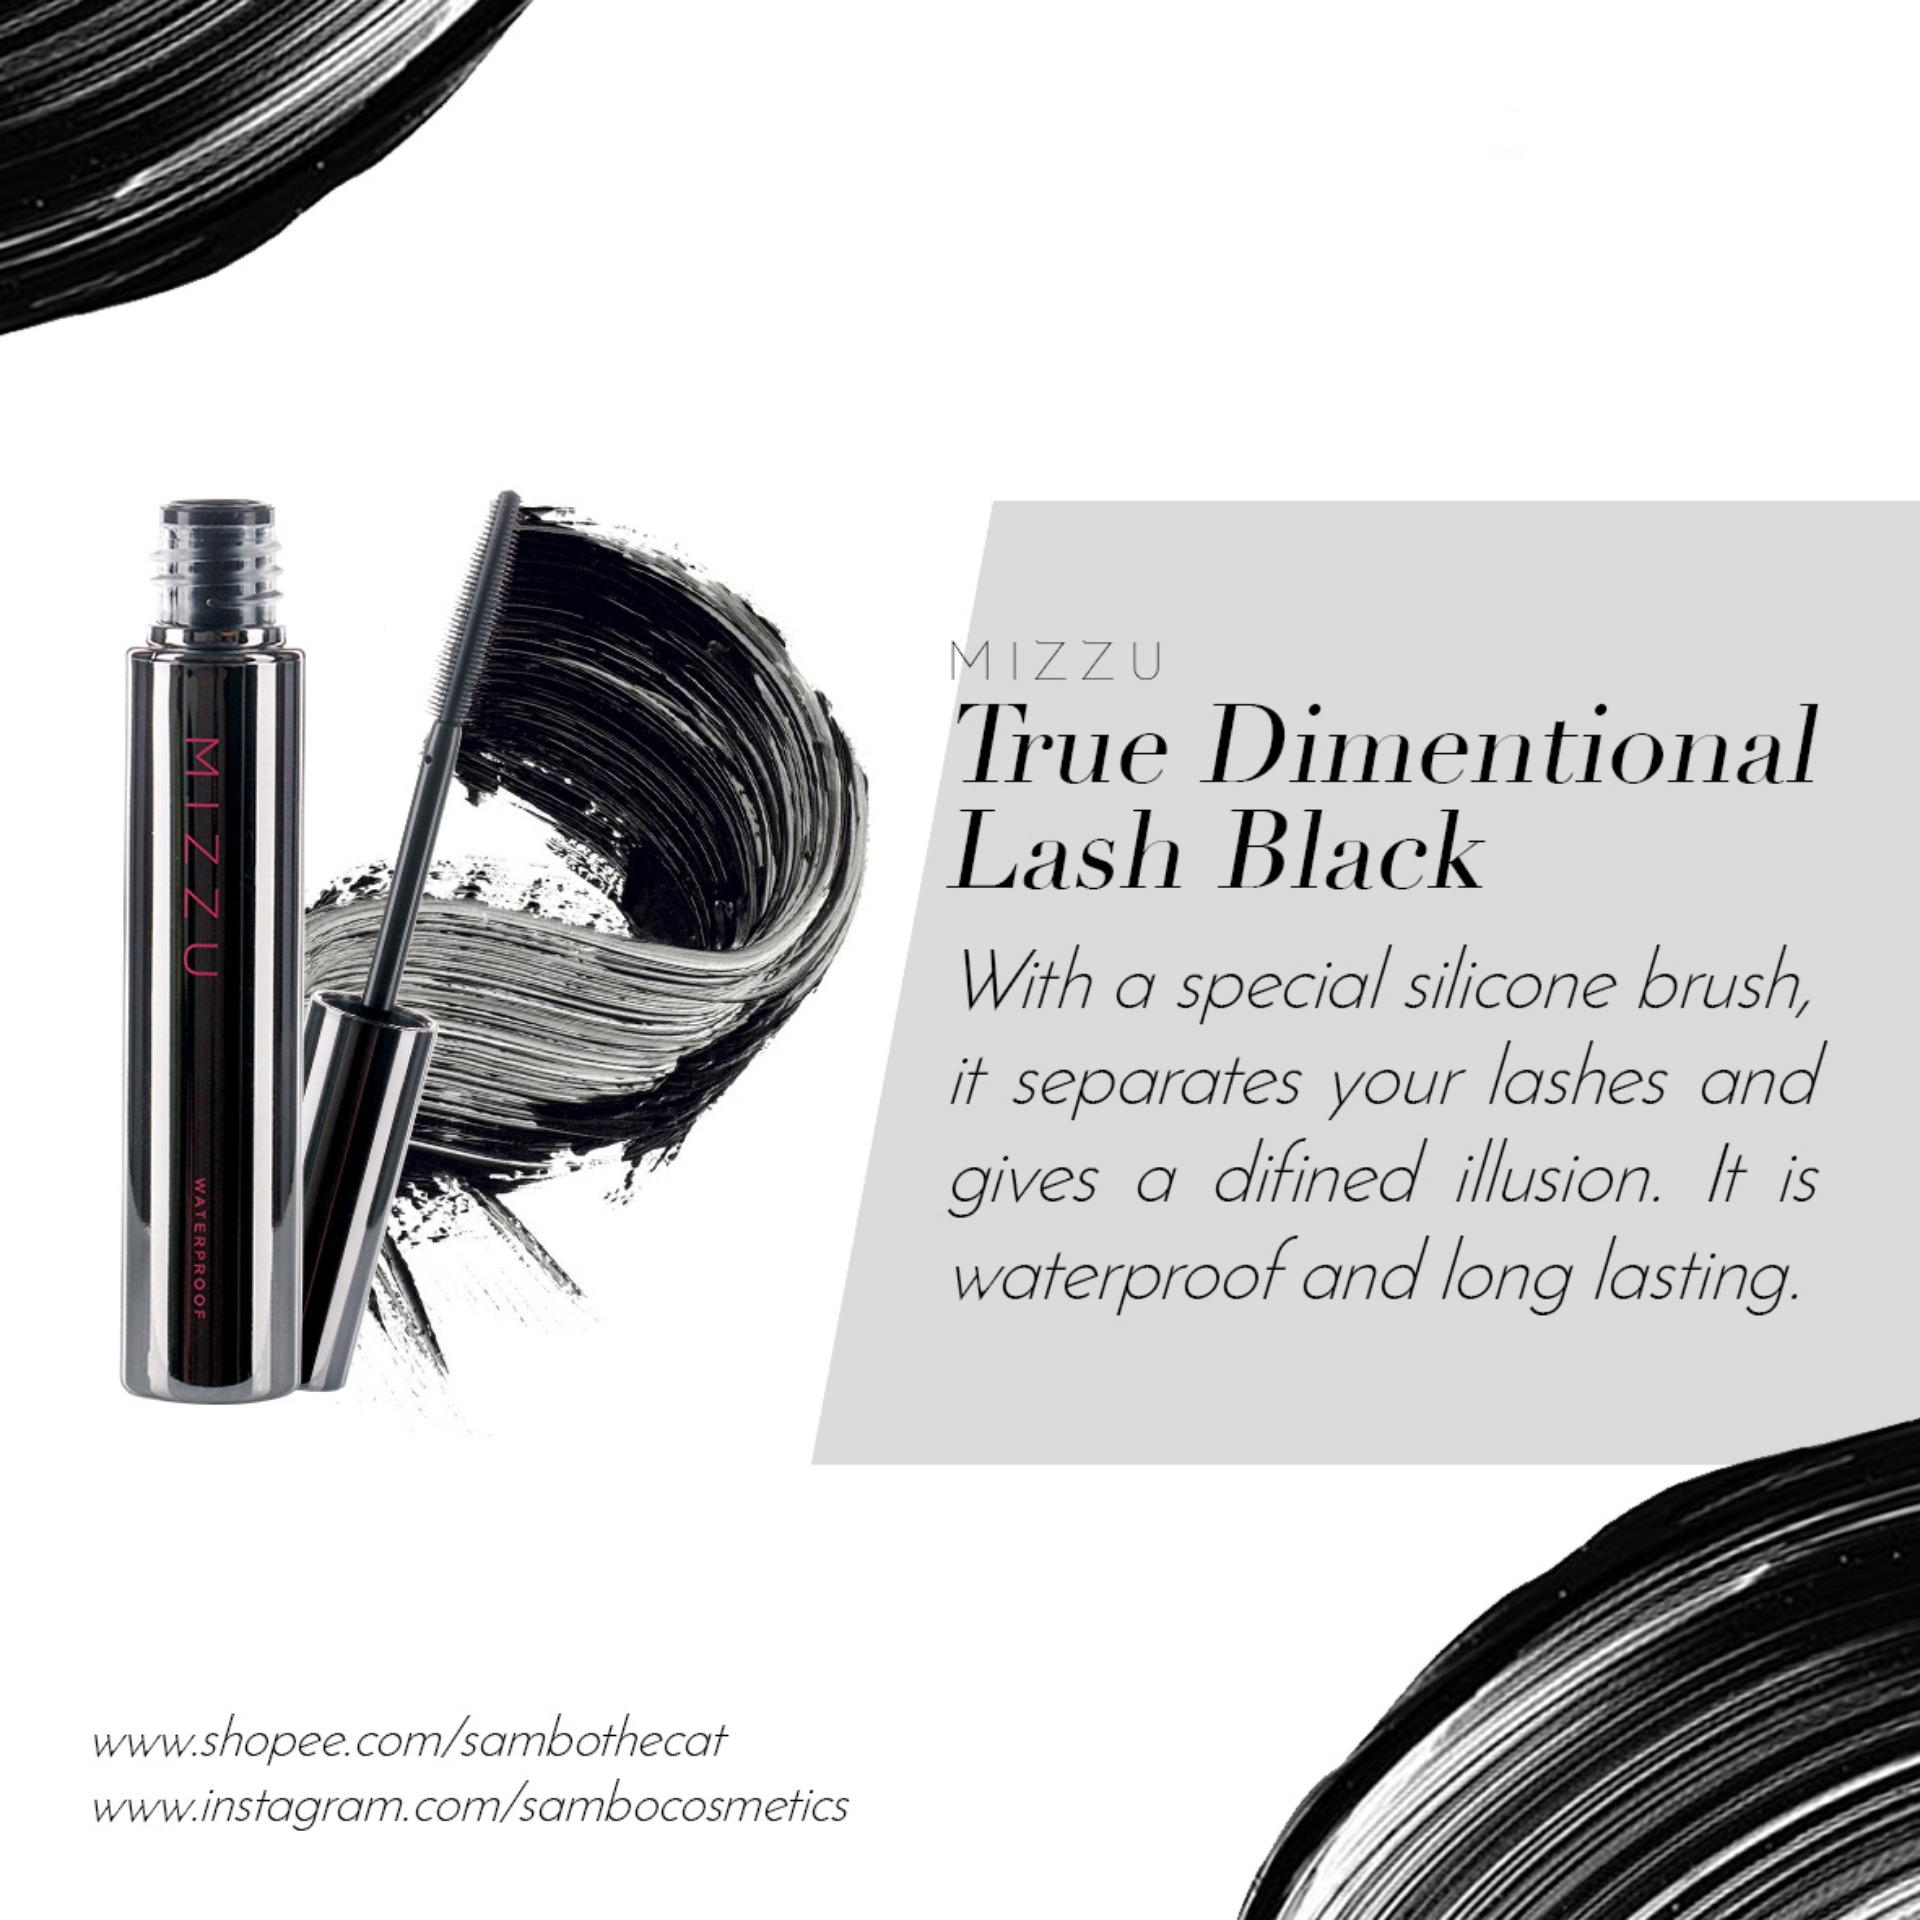 Mizzu True Dimensional Lash (Black) - Waterproof Mascara